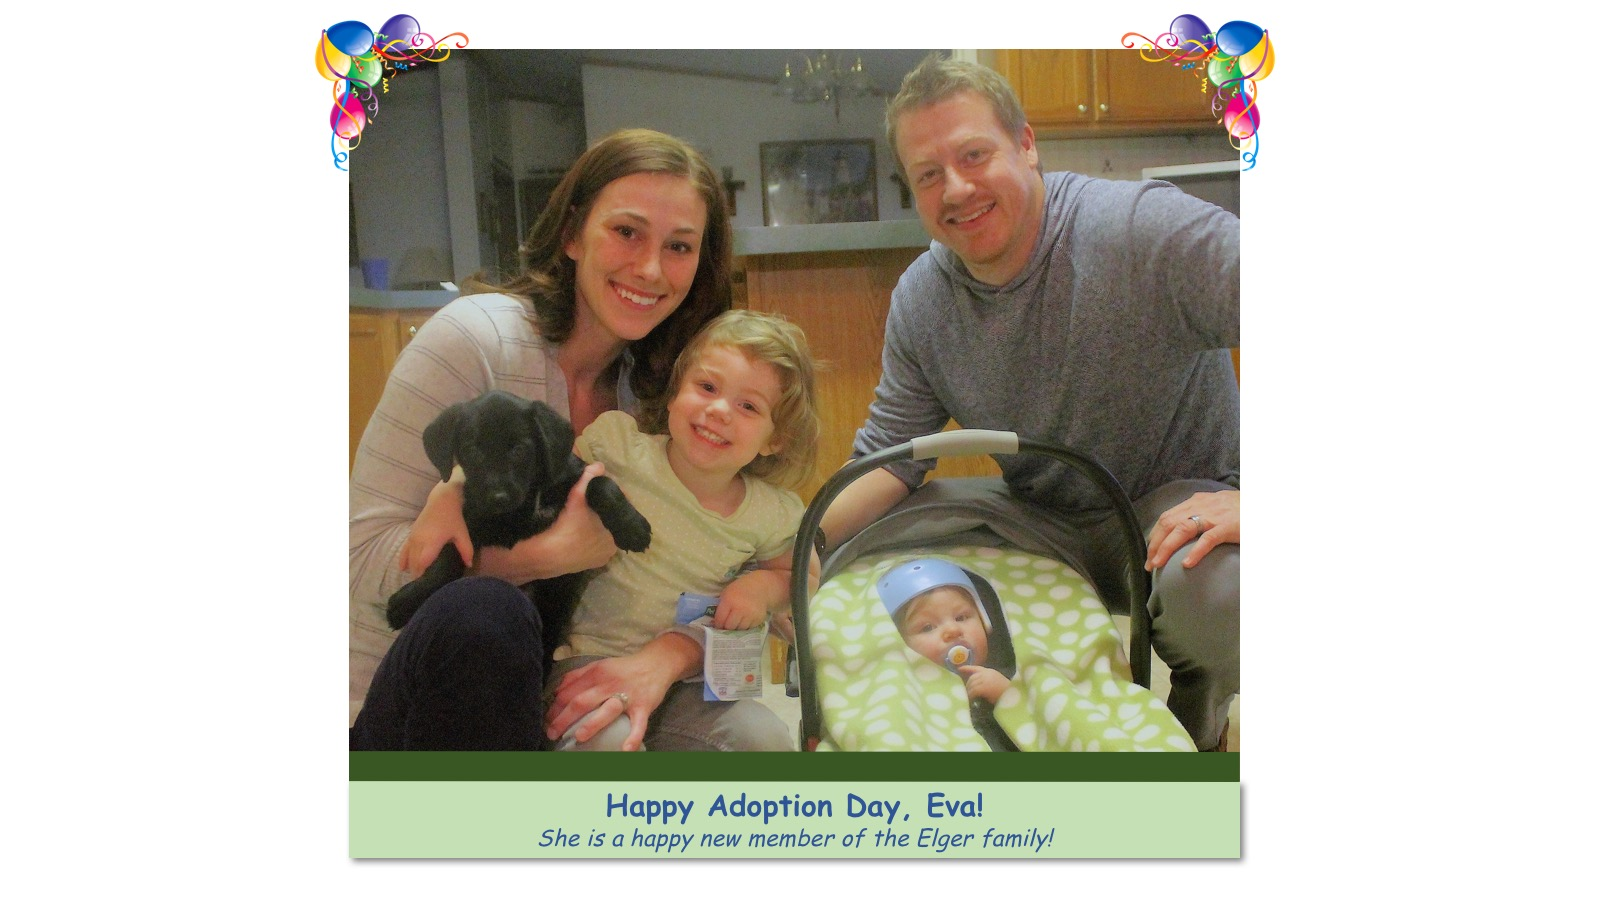 Eva_Adoption_photo90902.jpg